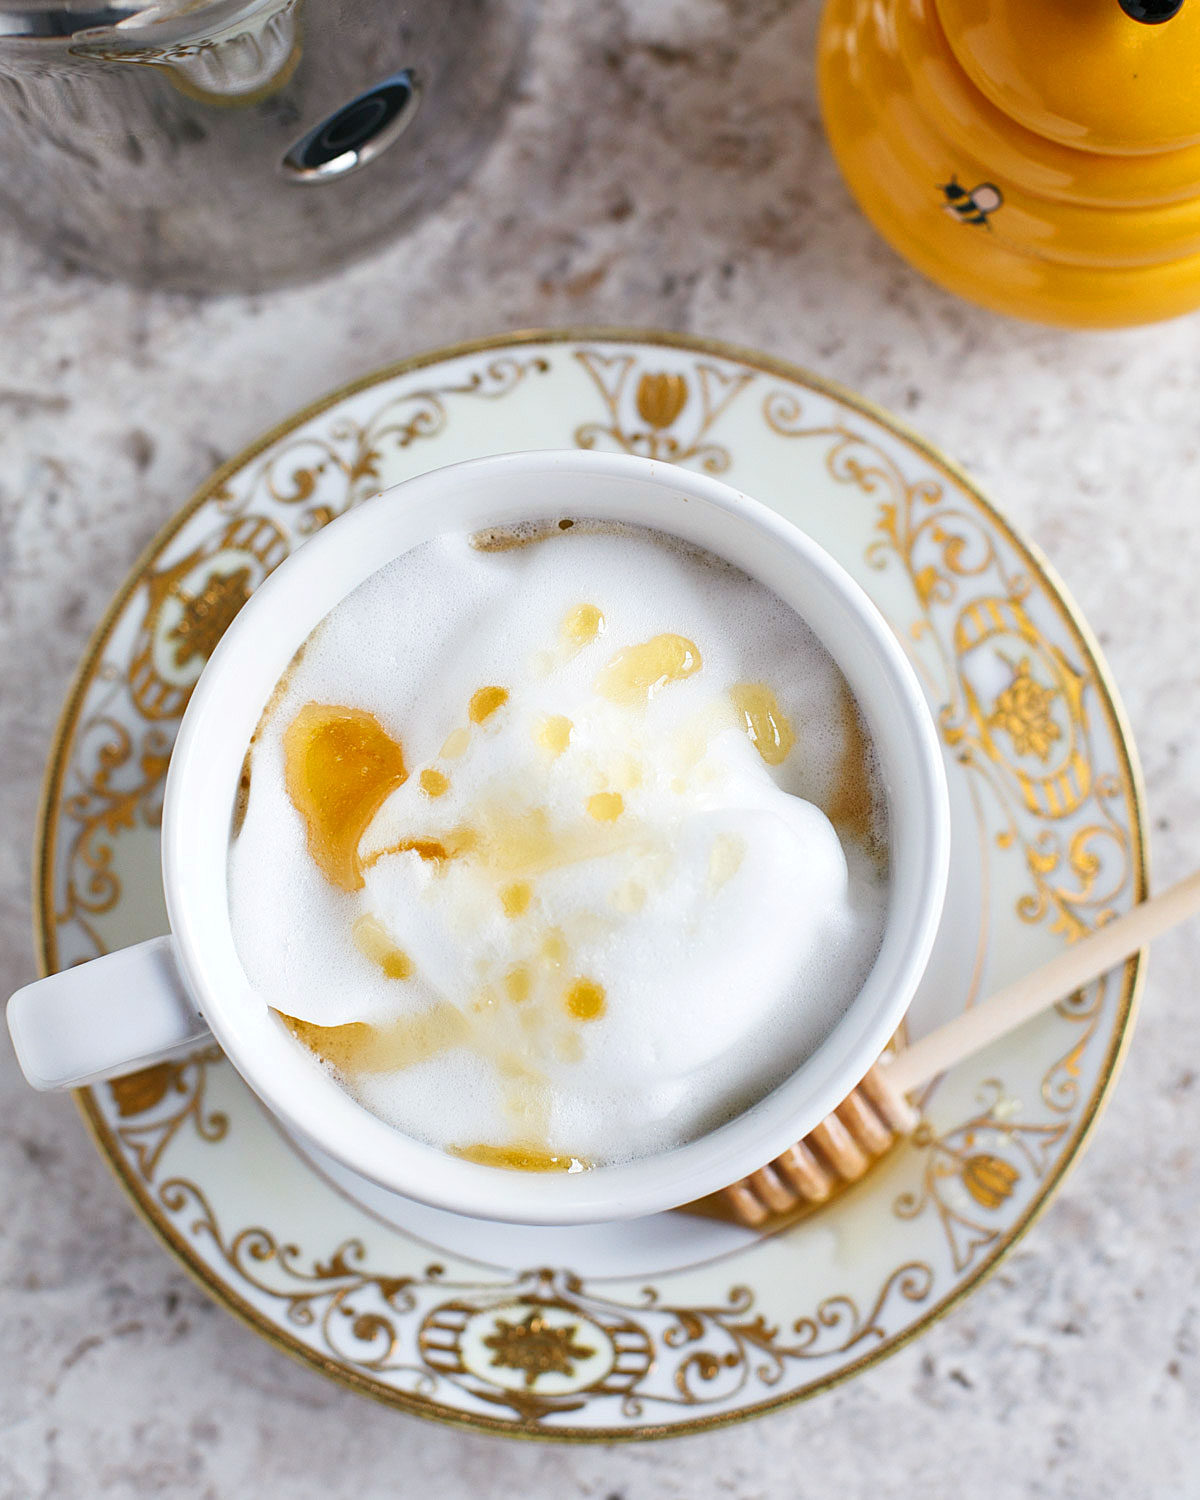 This honey cream latte is a unique take on latte. The honey floral notes will make your next cup of latte that much better!